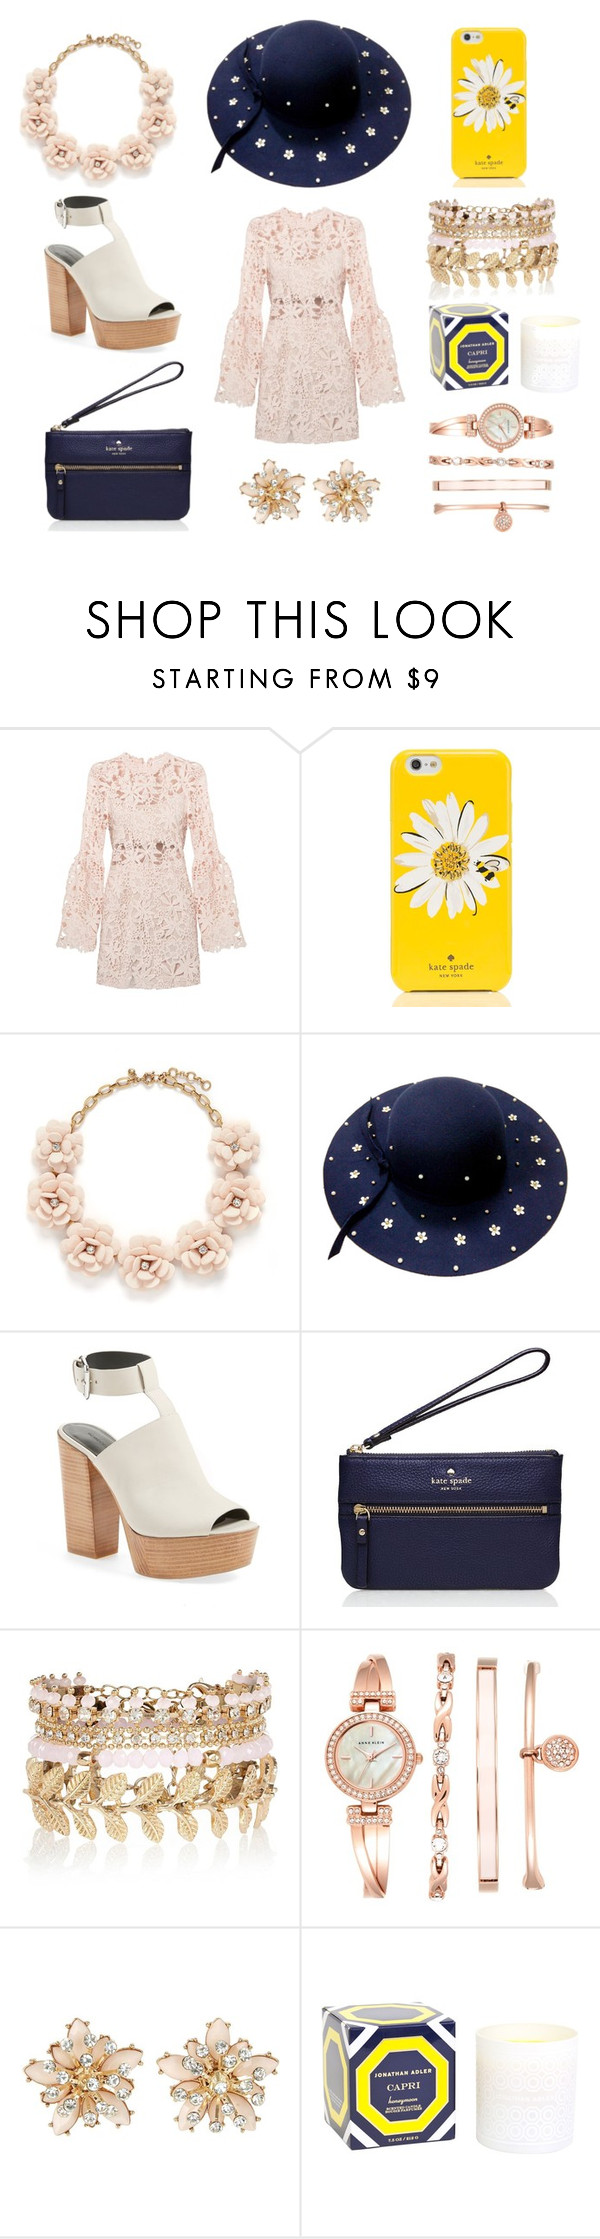 """""""Untitled #12"""" by trendypanda ❤ liked on Polyvore featuring Kate Spade, J.Crew, WithChic, Rebecca Minkoff, River Island, Anne Klein, New Look and Jonathan Adler"""